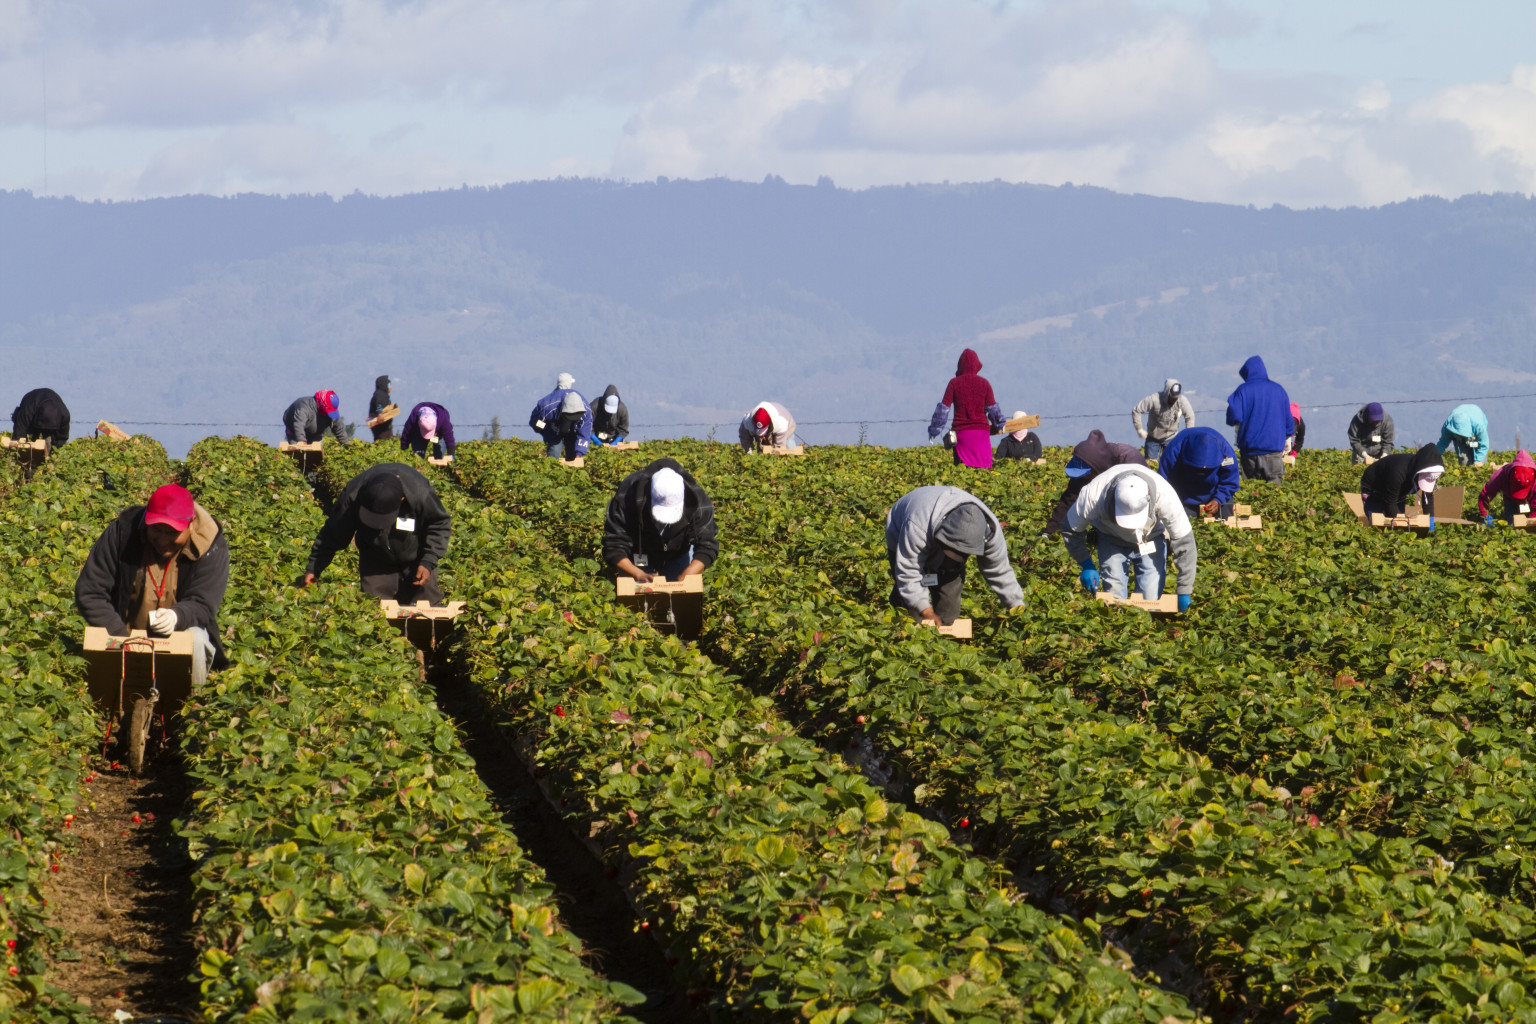 Migrant Farm Workers in Strawberry fields.